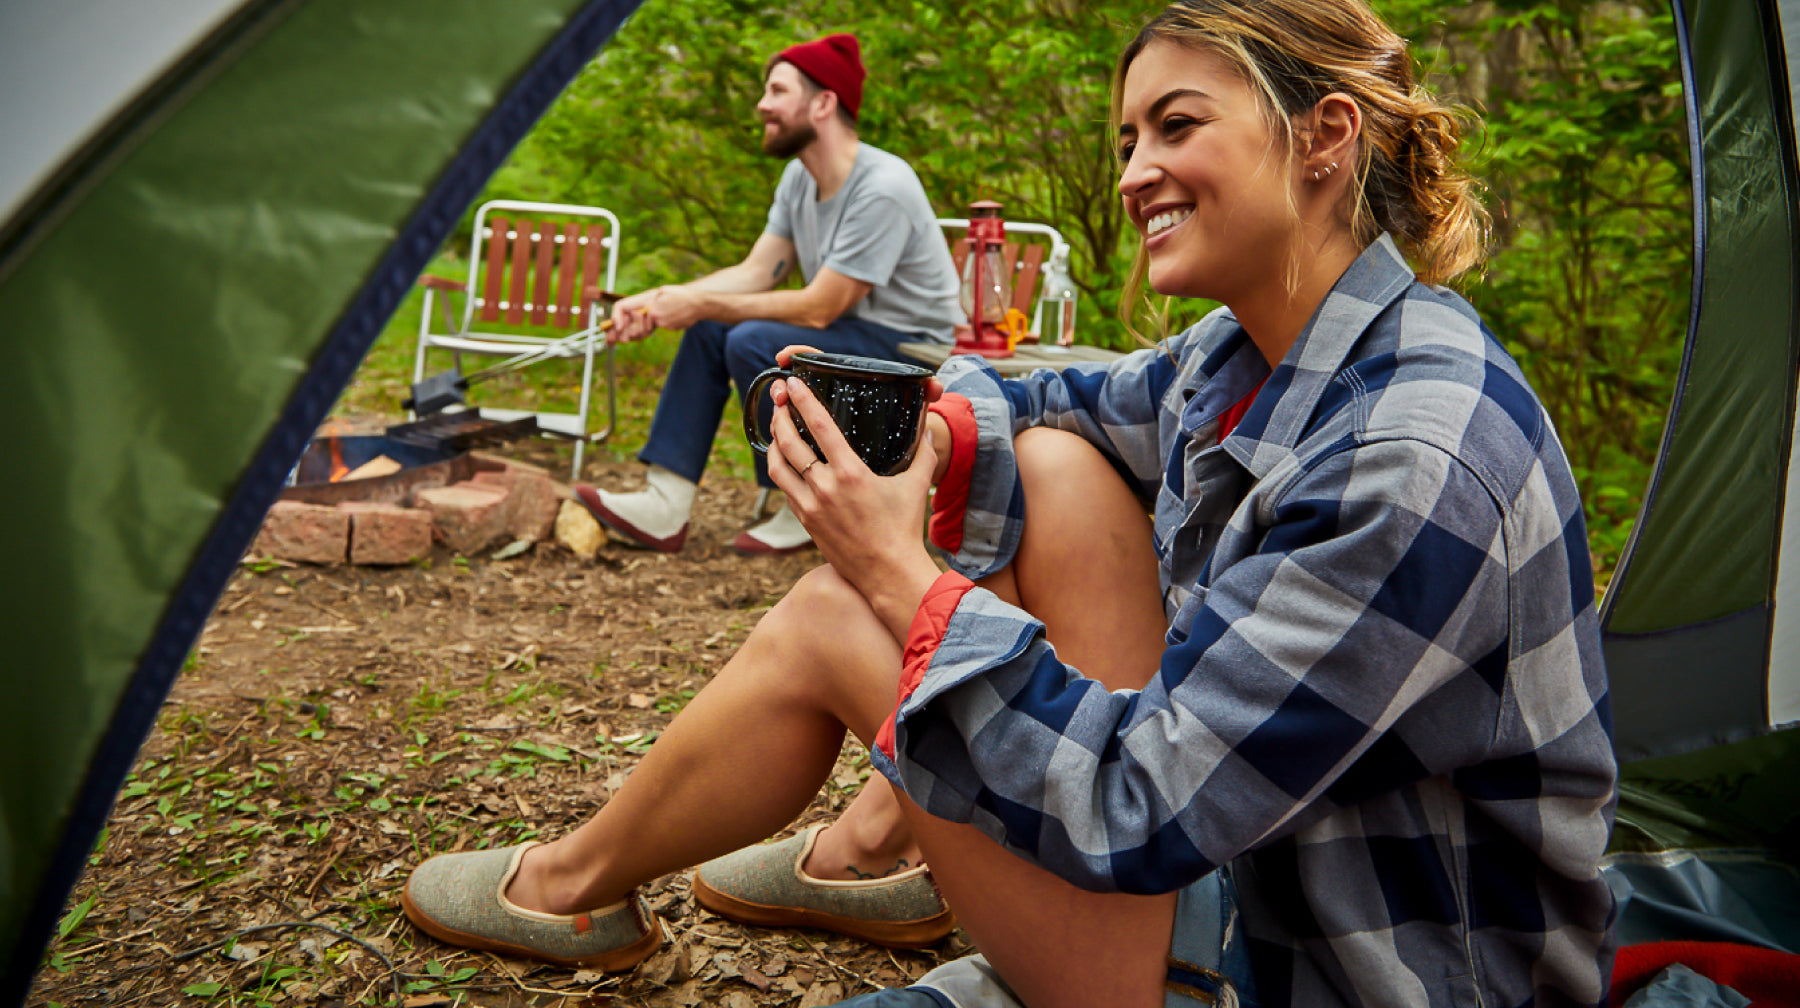 Friends camping in the woods wearing new Acorn outdoor slipper styles